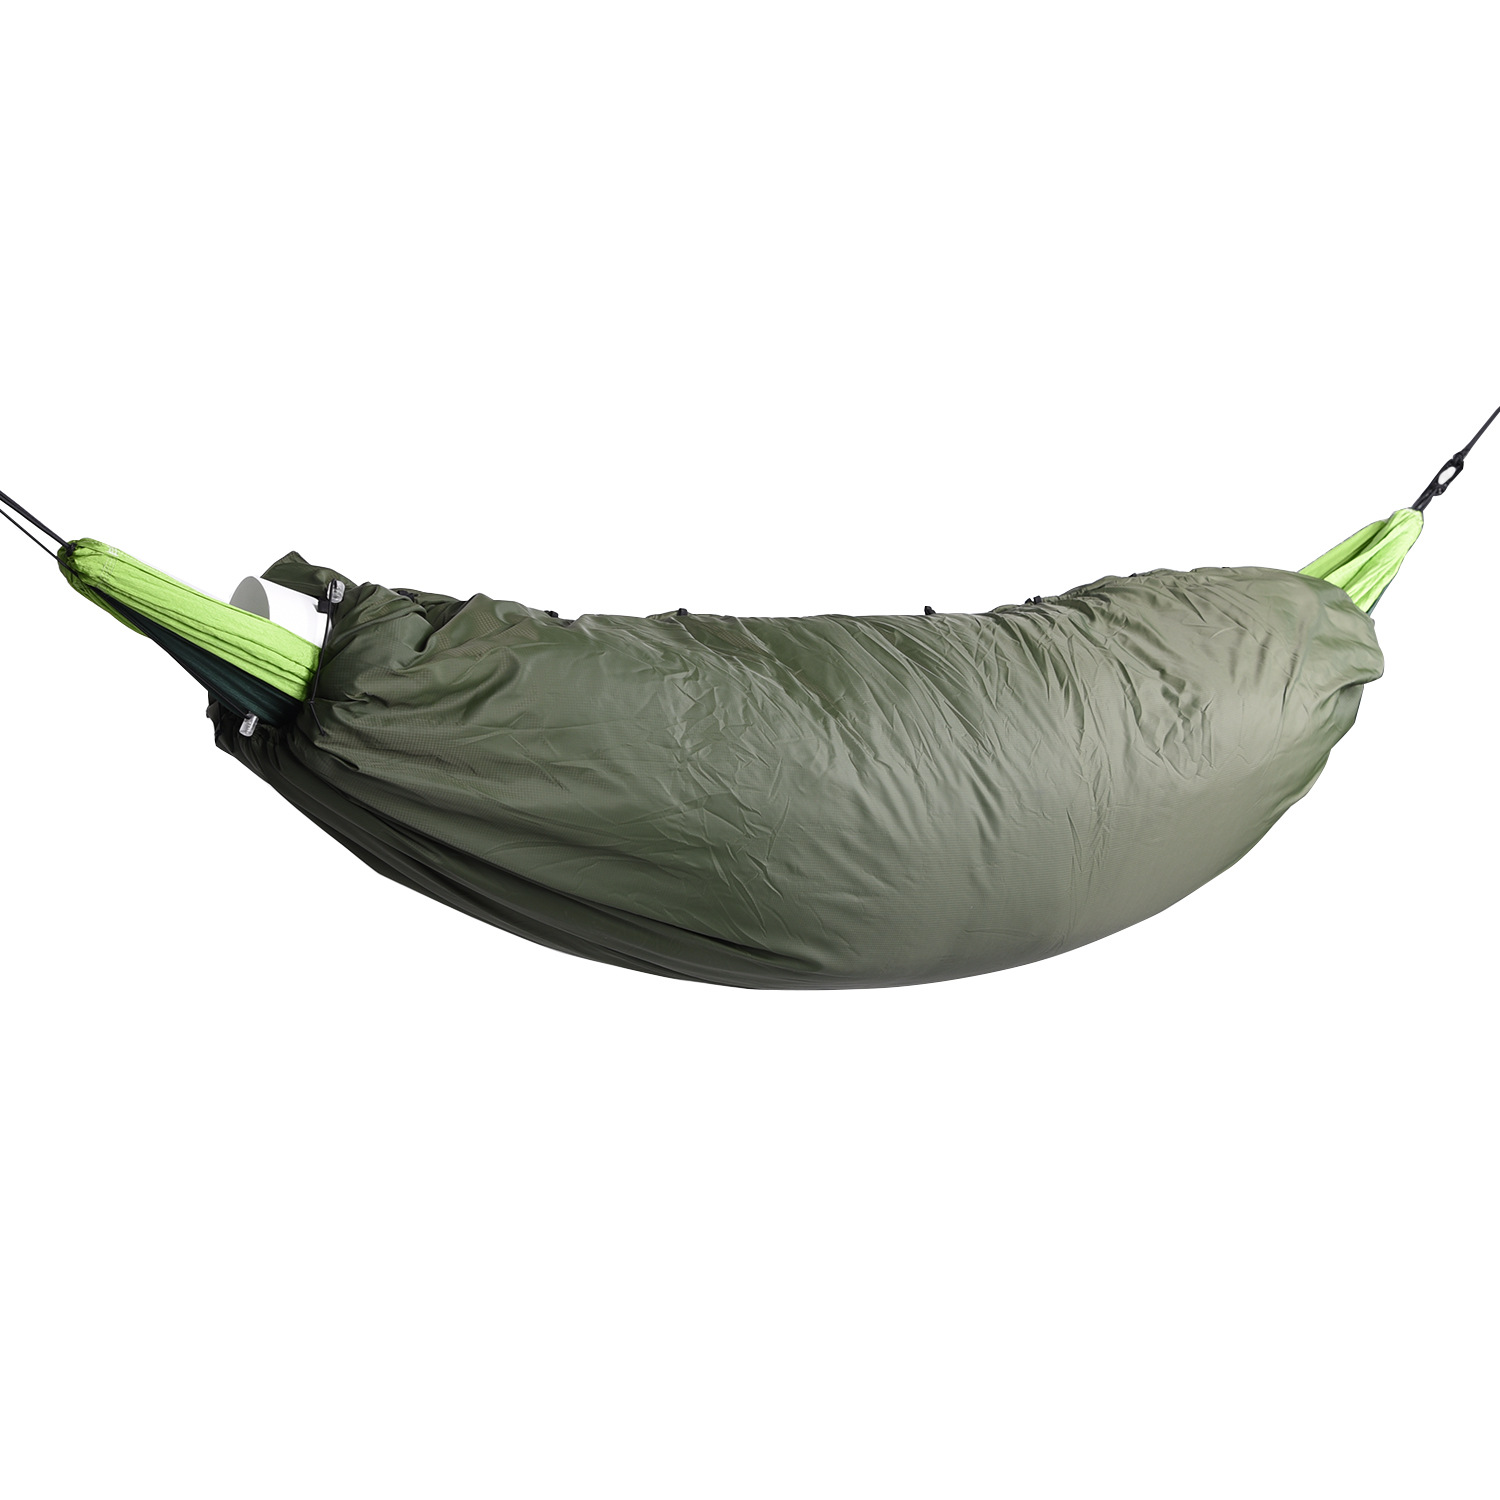 Cross Border for Green Outdoor Polydown Hammock Sleeping Bag Autumn And Winter Camping Angling Portable Heat Cover